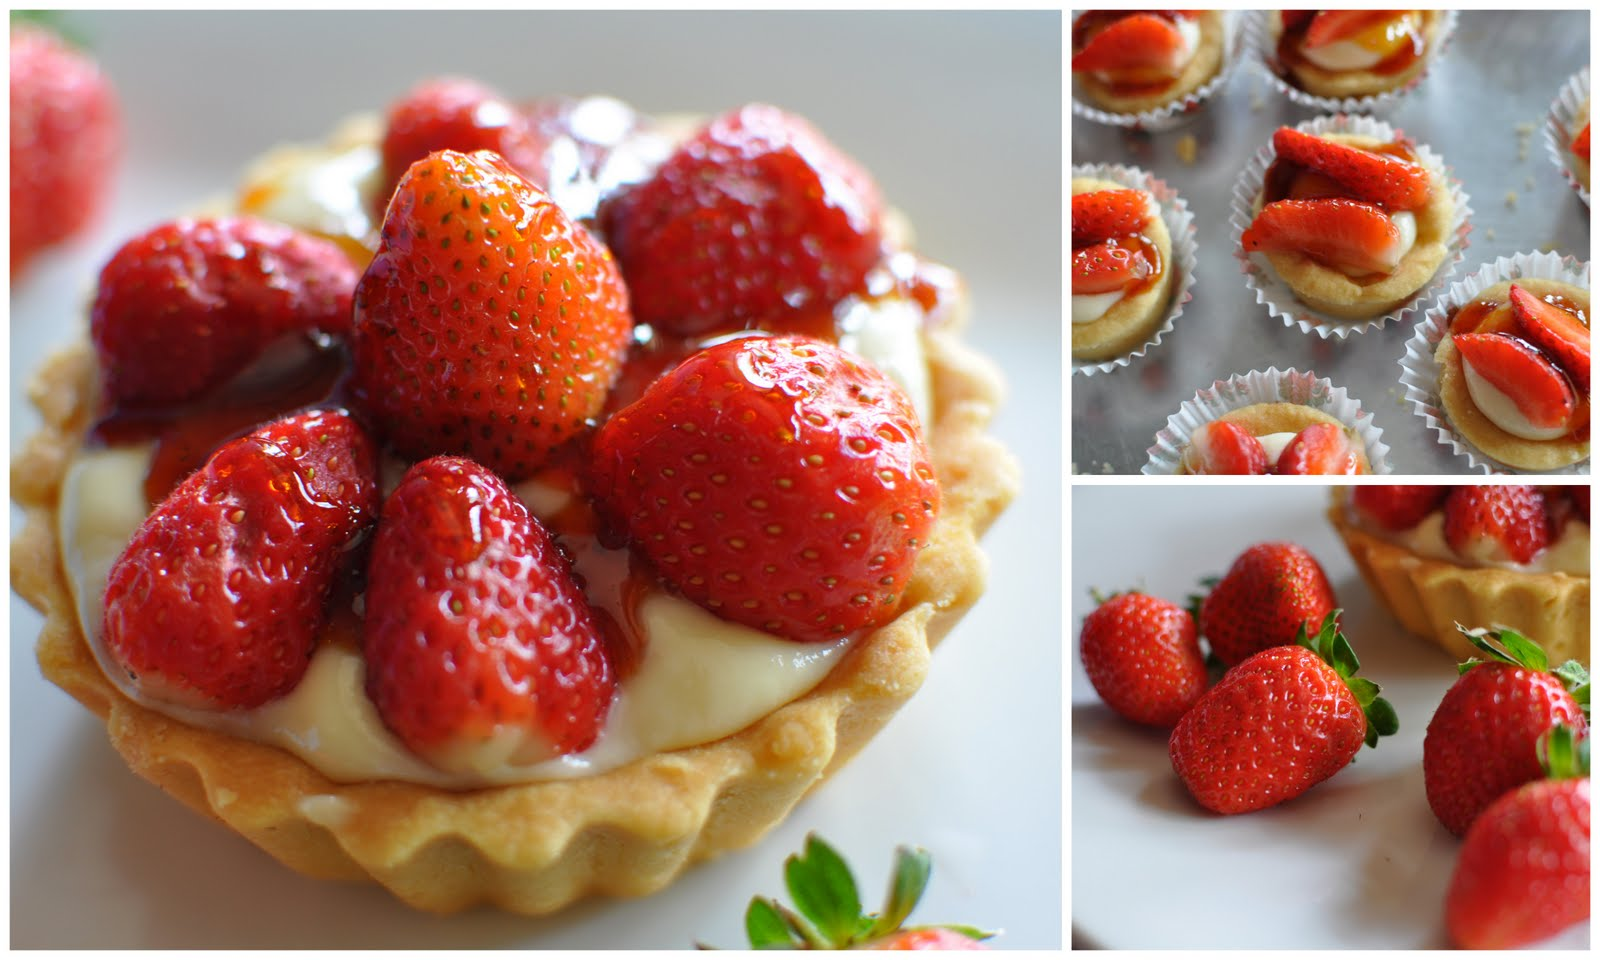 ... Guardian: Strawberry Shortbread Tart With Strawberry Toffee Drizzle